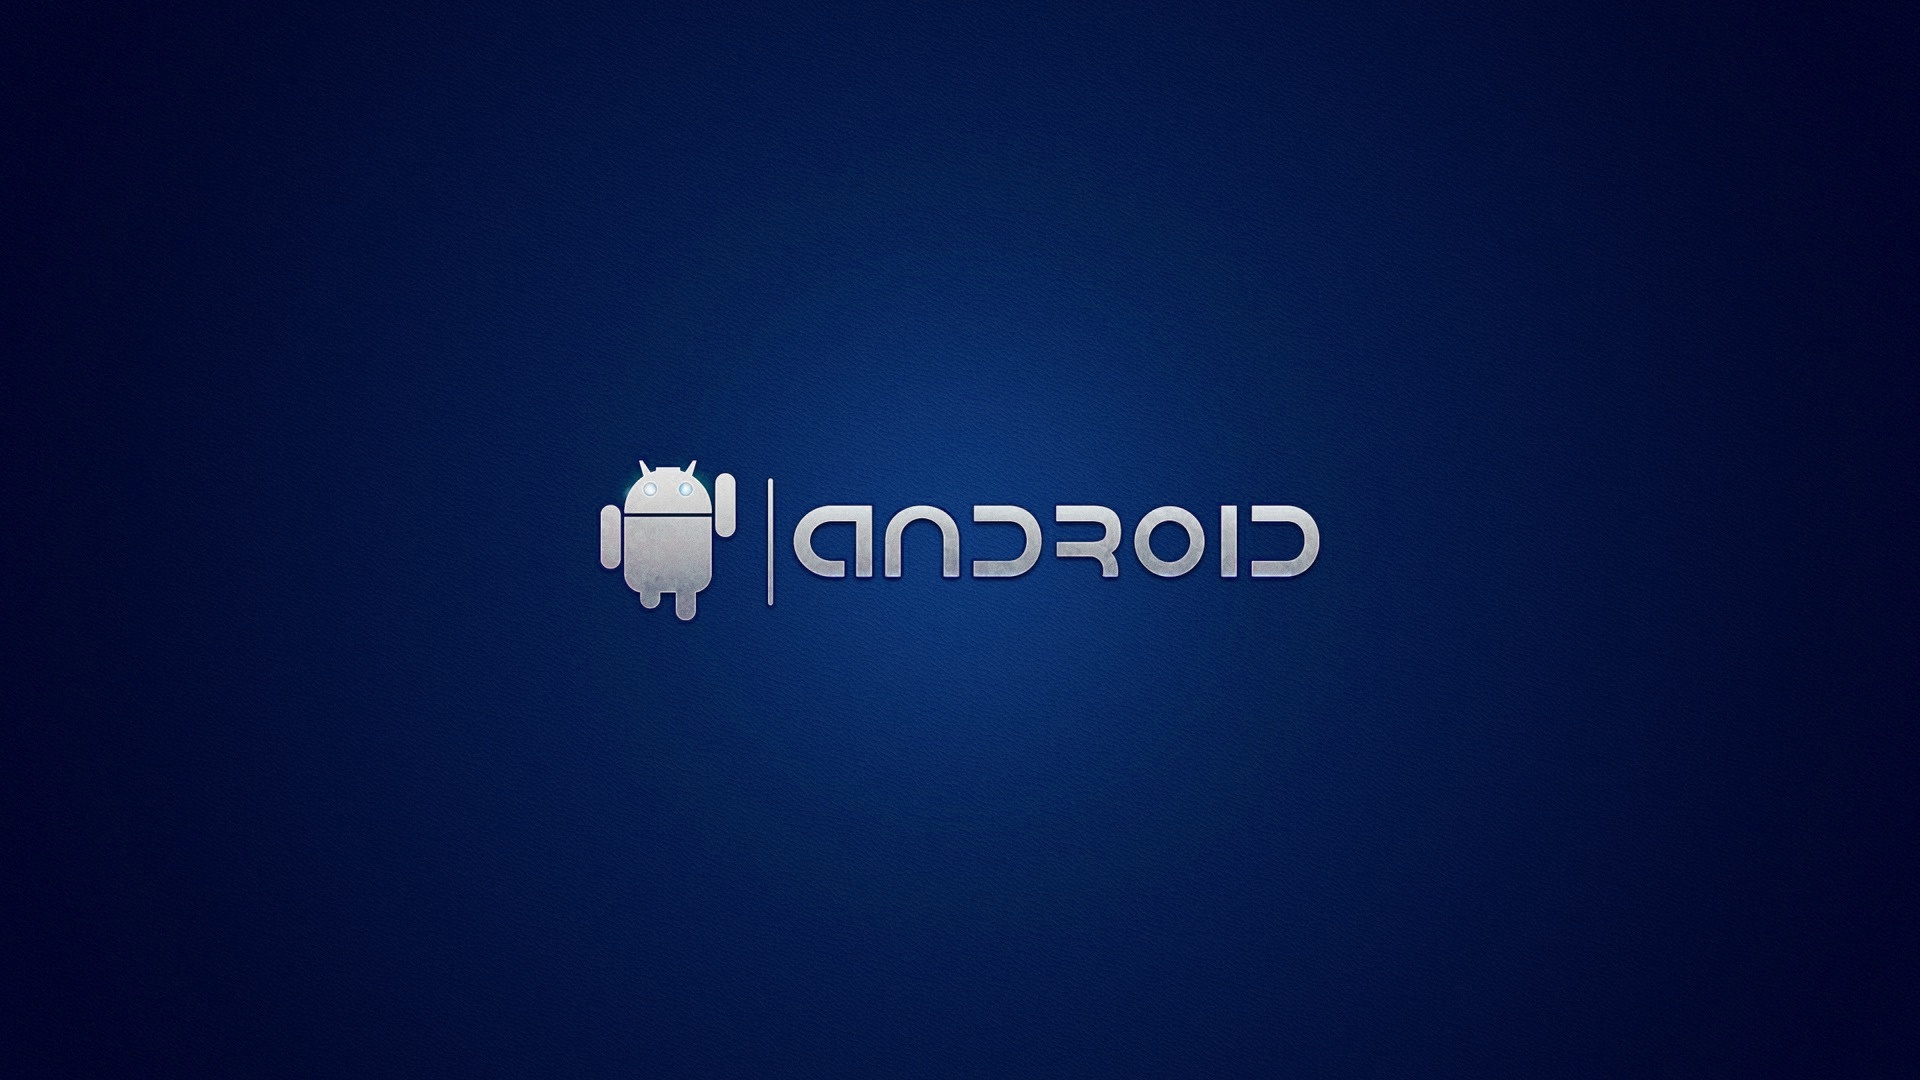 Android blue   High Definition Wallpapers   HD wallpapers 1920x1080